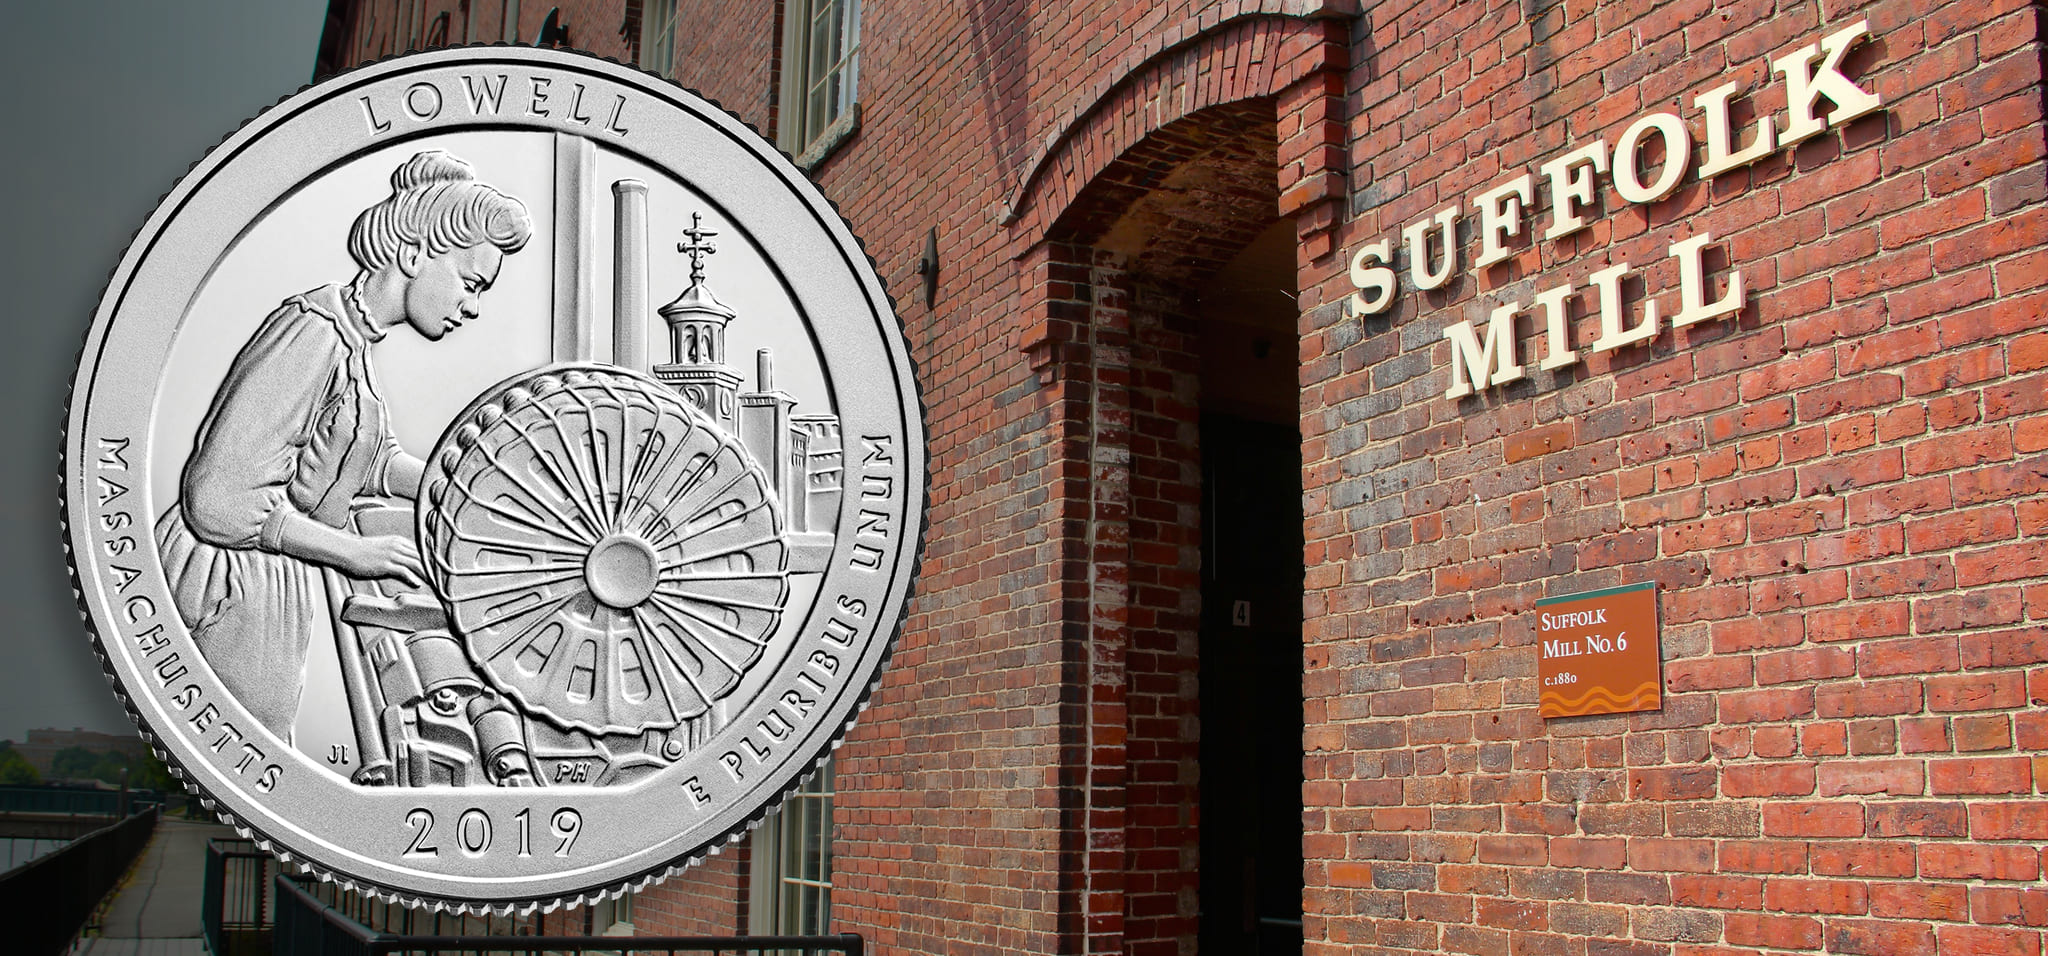 Lowell National Historical Park featured on 46th National Park Quarter